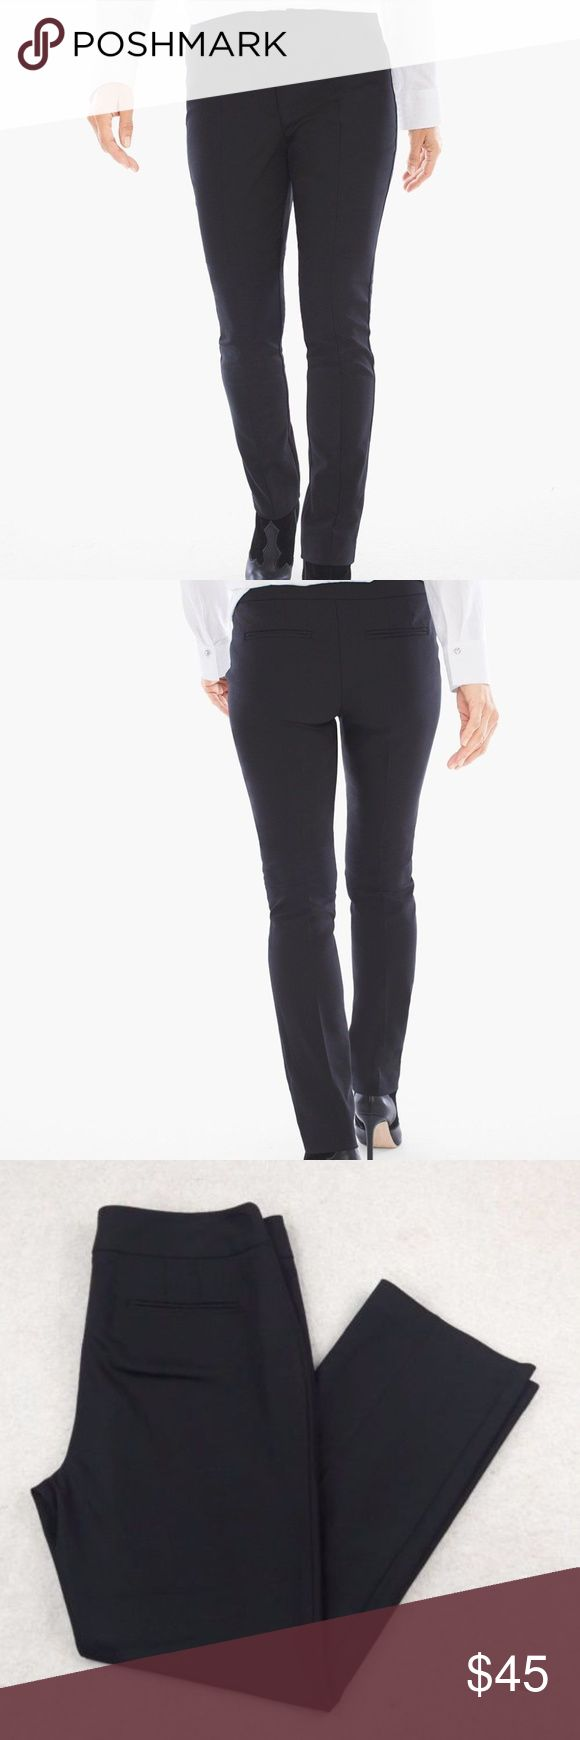 """Chico's So Slimming Seamed Black Chico's So Slimming Womens Pant Sz 12 (Chico's Sz 2 Short) Seamed Trousers Black  Rise:10.5"""" Waist:18"""" Inseam:29""""  Gently used with no flaws. Please see photos for exact details. Chico's Pants Skinny"""